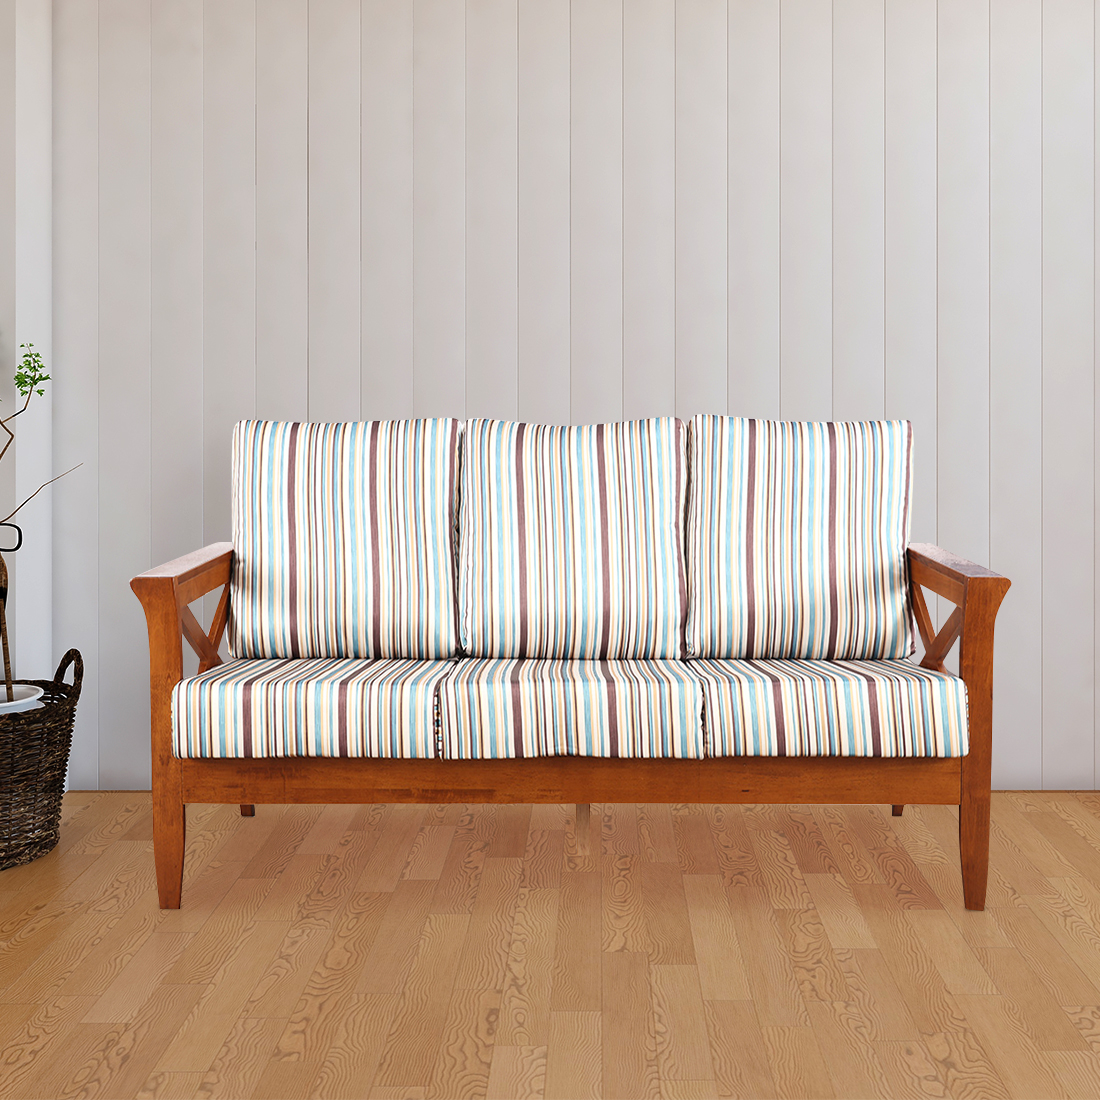 Aldrich Solid Wood Three Seater Sofa With Cushions in Stripes Colour by HomeTown